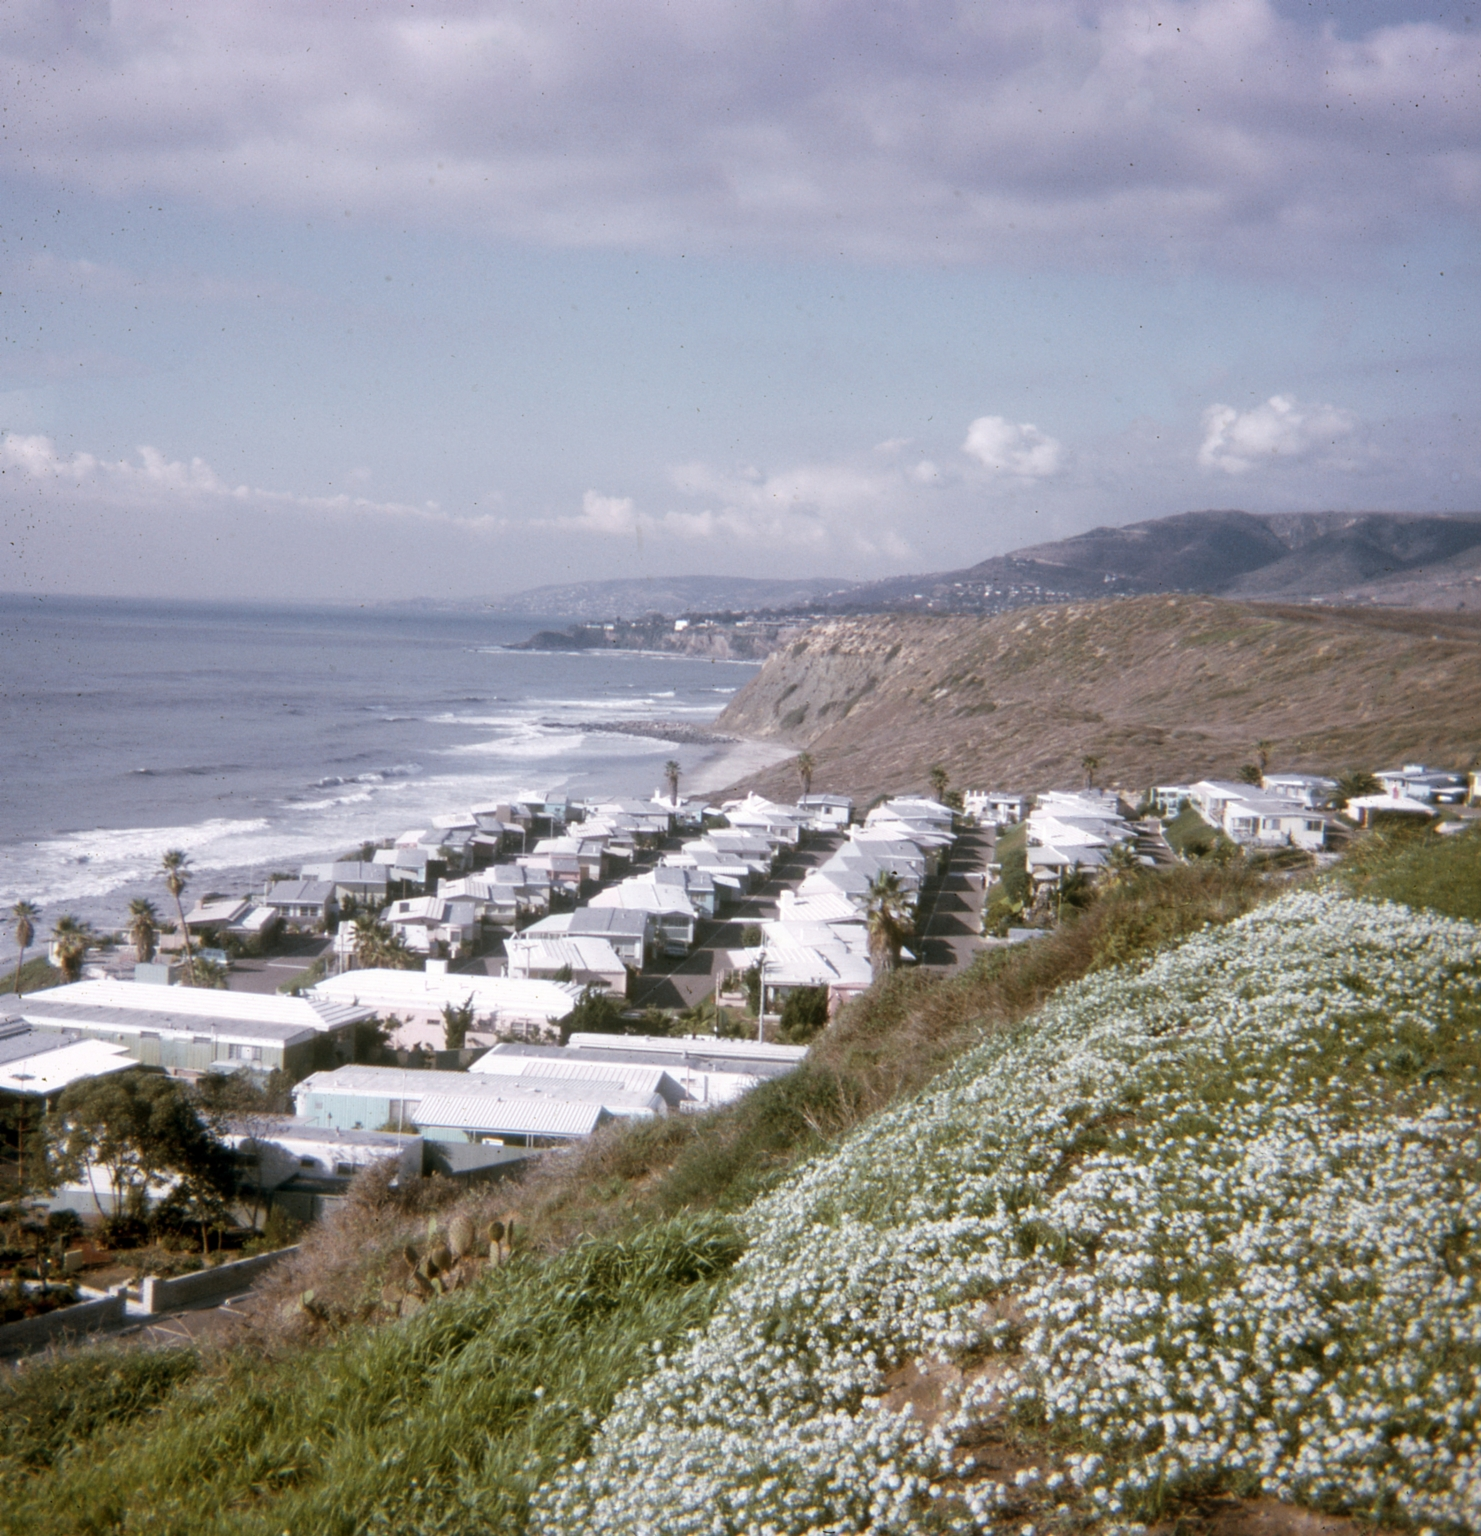 A view from a hillside overlooking the Dana Strand Club.